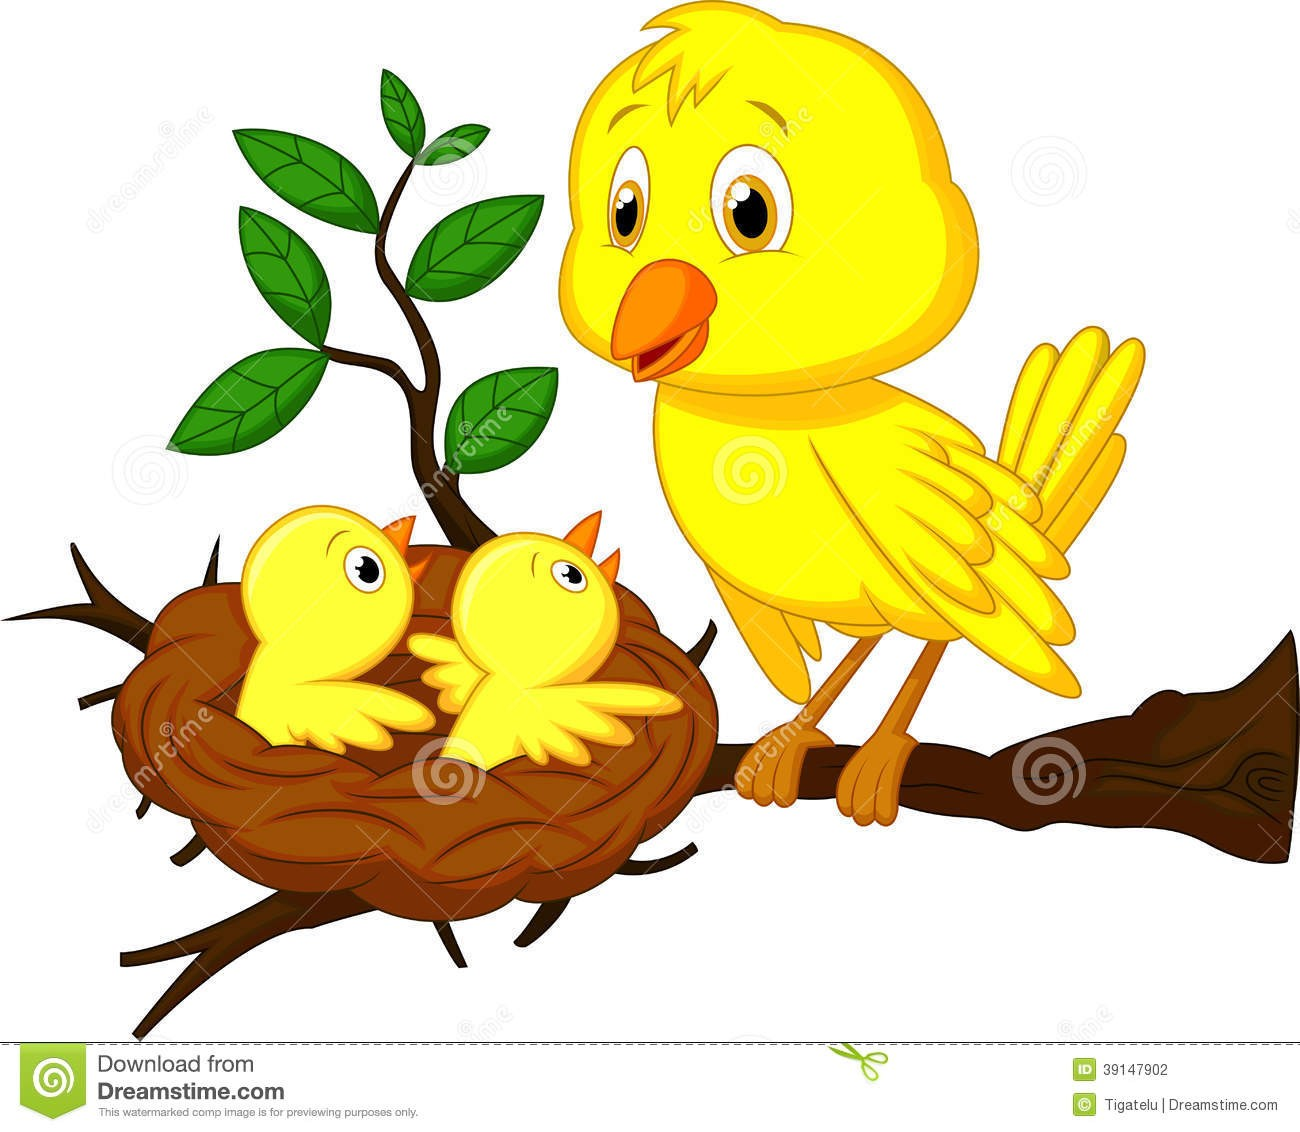 Cartoon nest clipart png transparent library On Bird Nest Clipart Free Cartoon 1 | Clip Art png transparent library